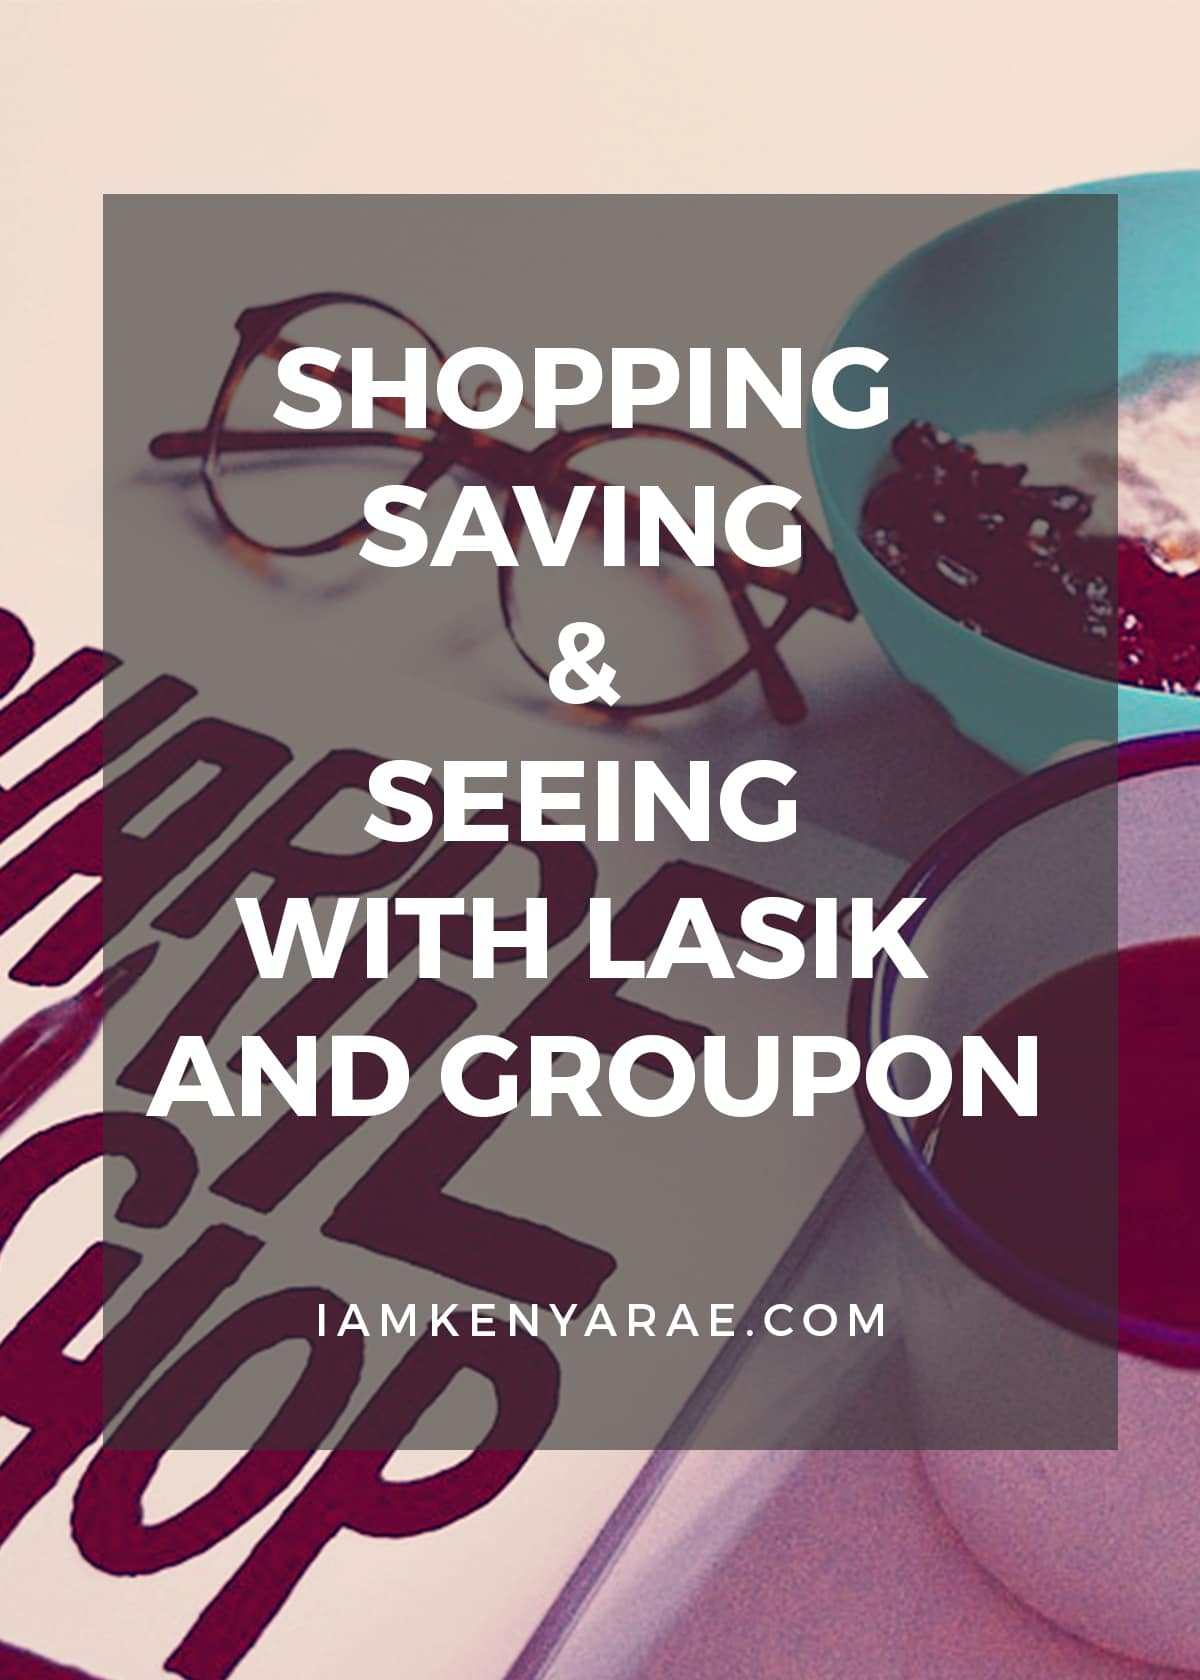 Shopping, Saving & Seeing with Lasik and Groupon